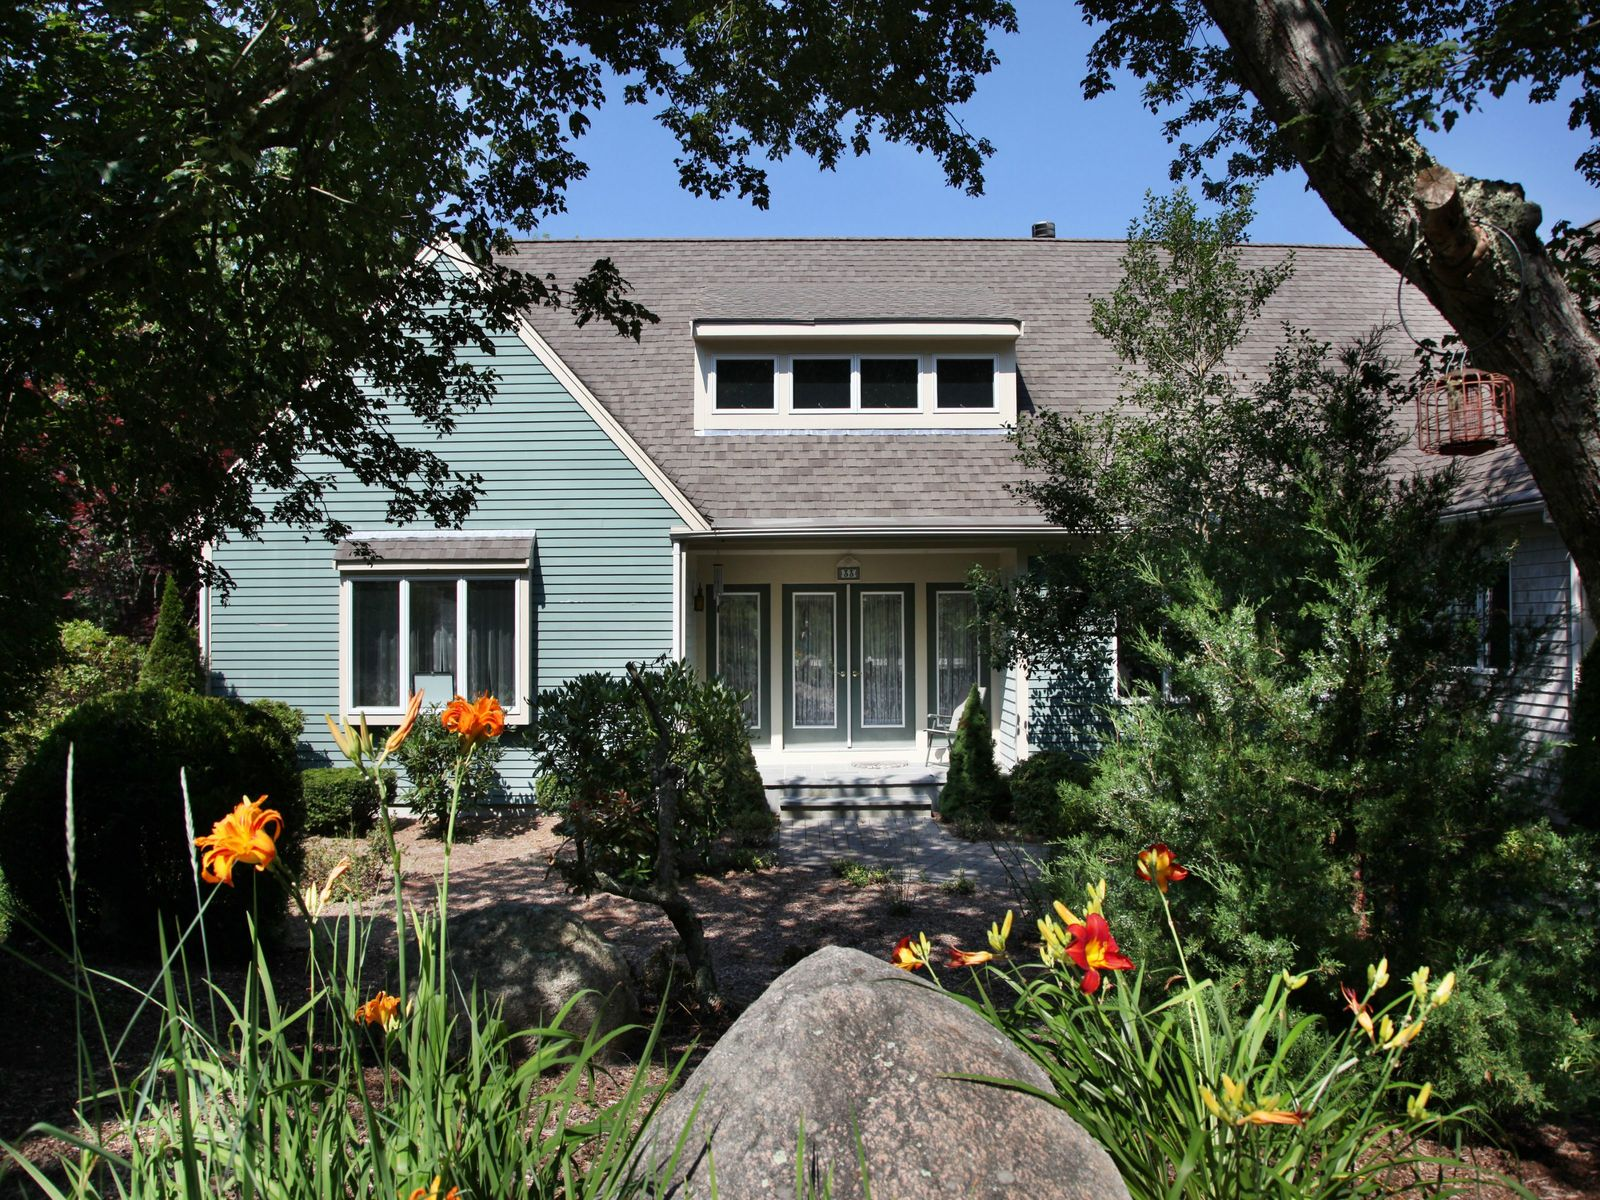 Waterfront Cape Cod Living at its Best, East Falmouth MA Single Family Home - Cape Cod Real Estate